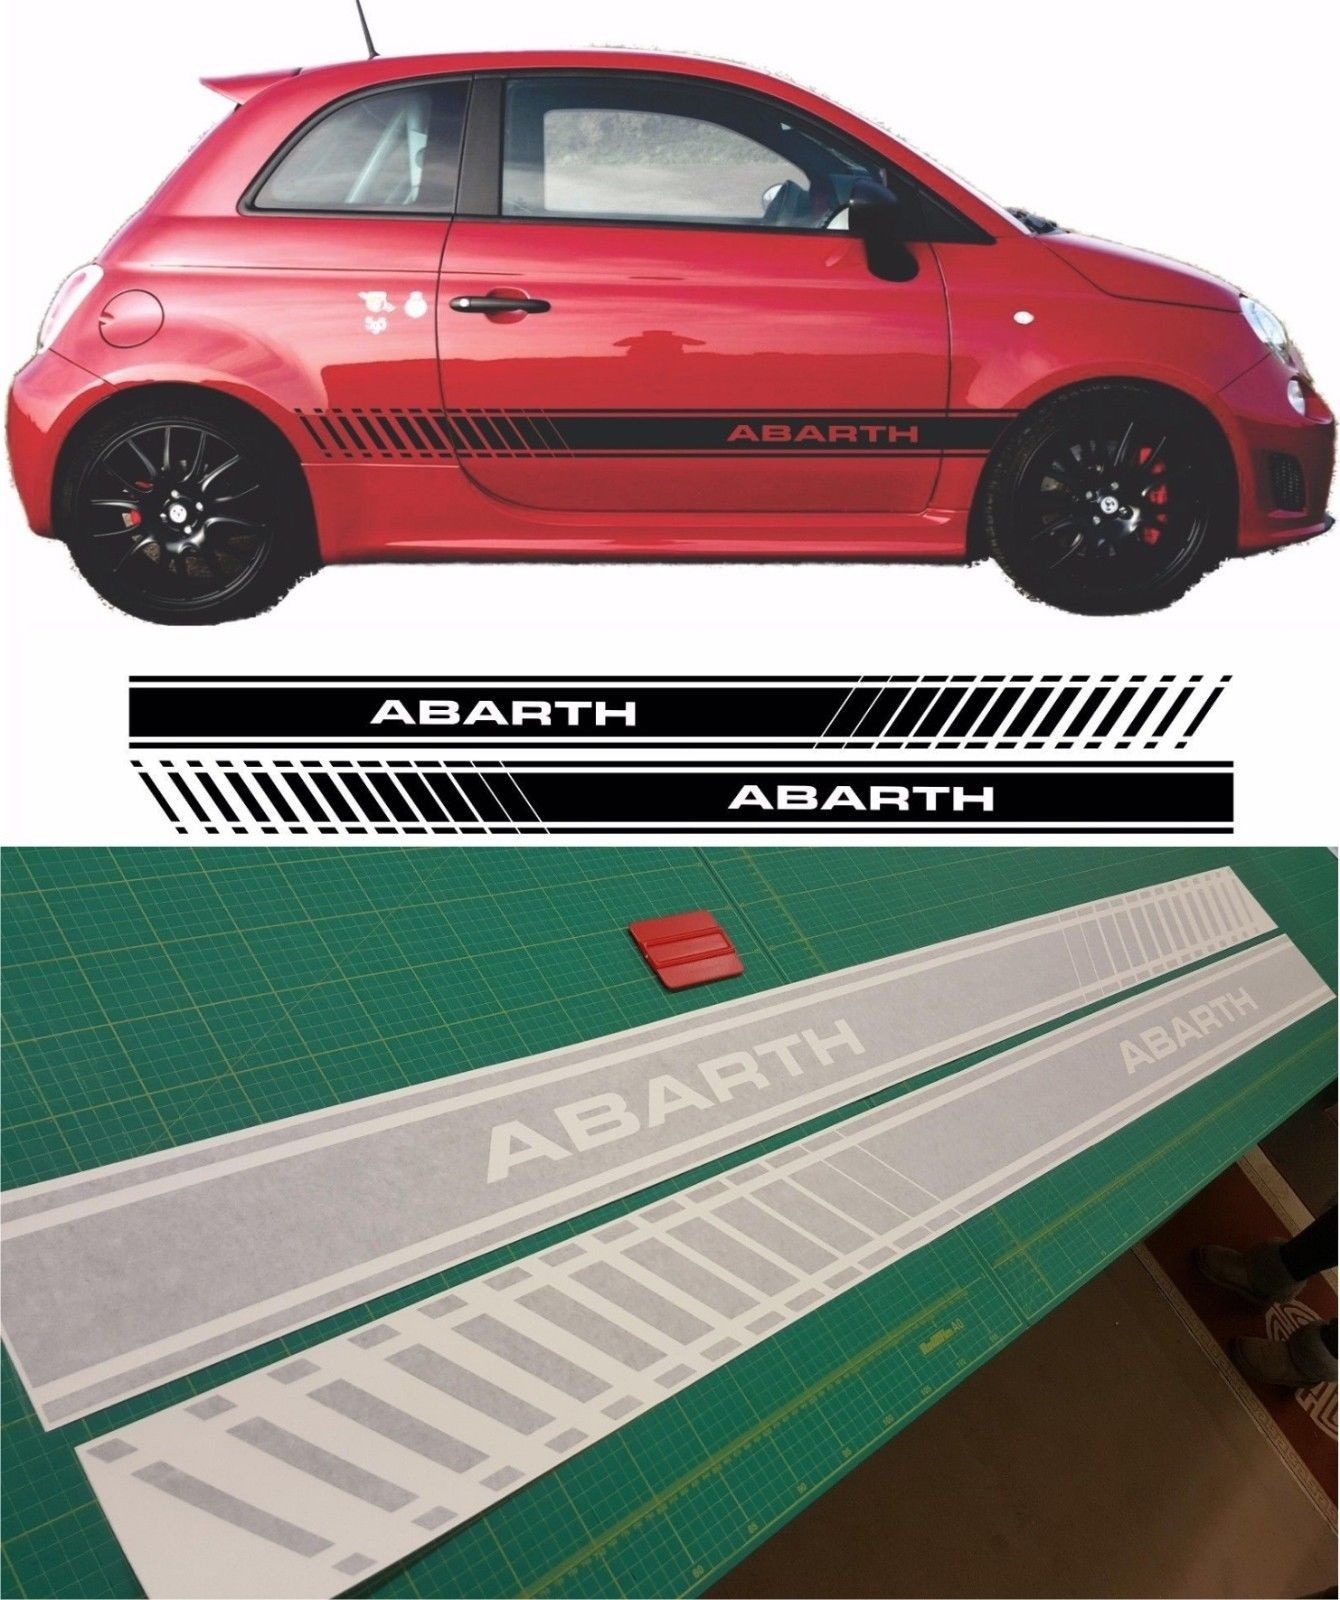 Fiat 500 Side Stripes Decals Stickers Vinyls any colours custom design